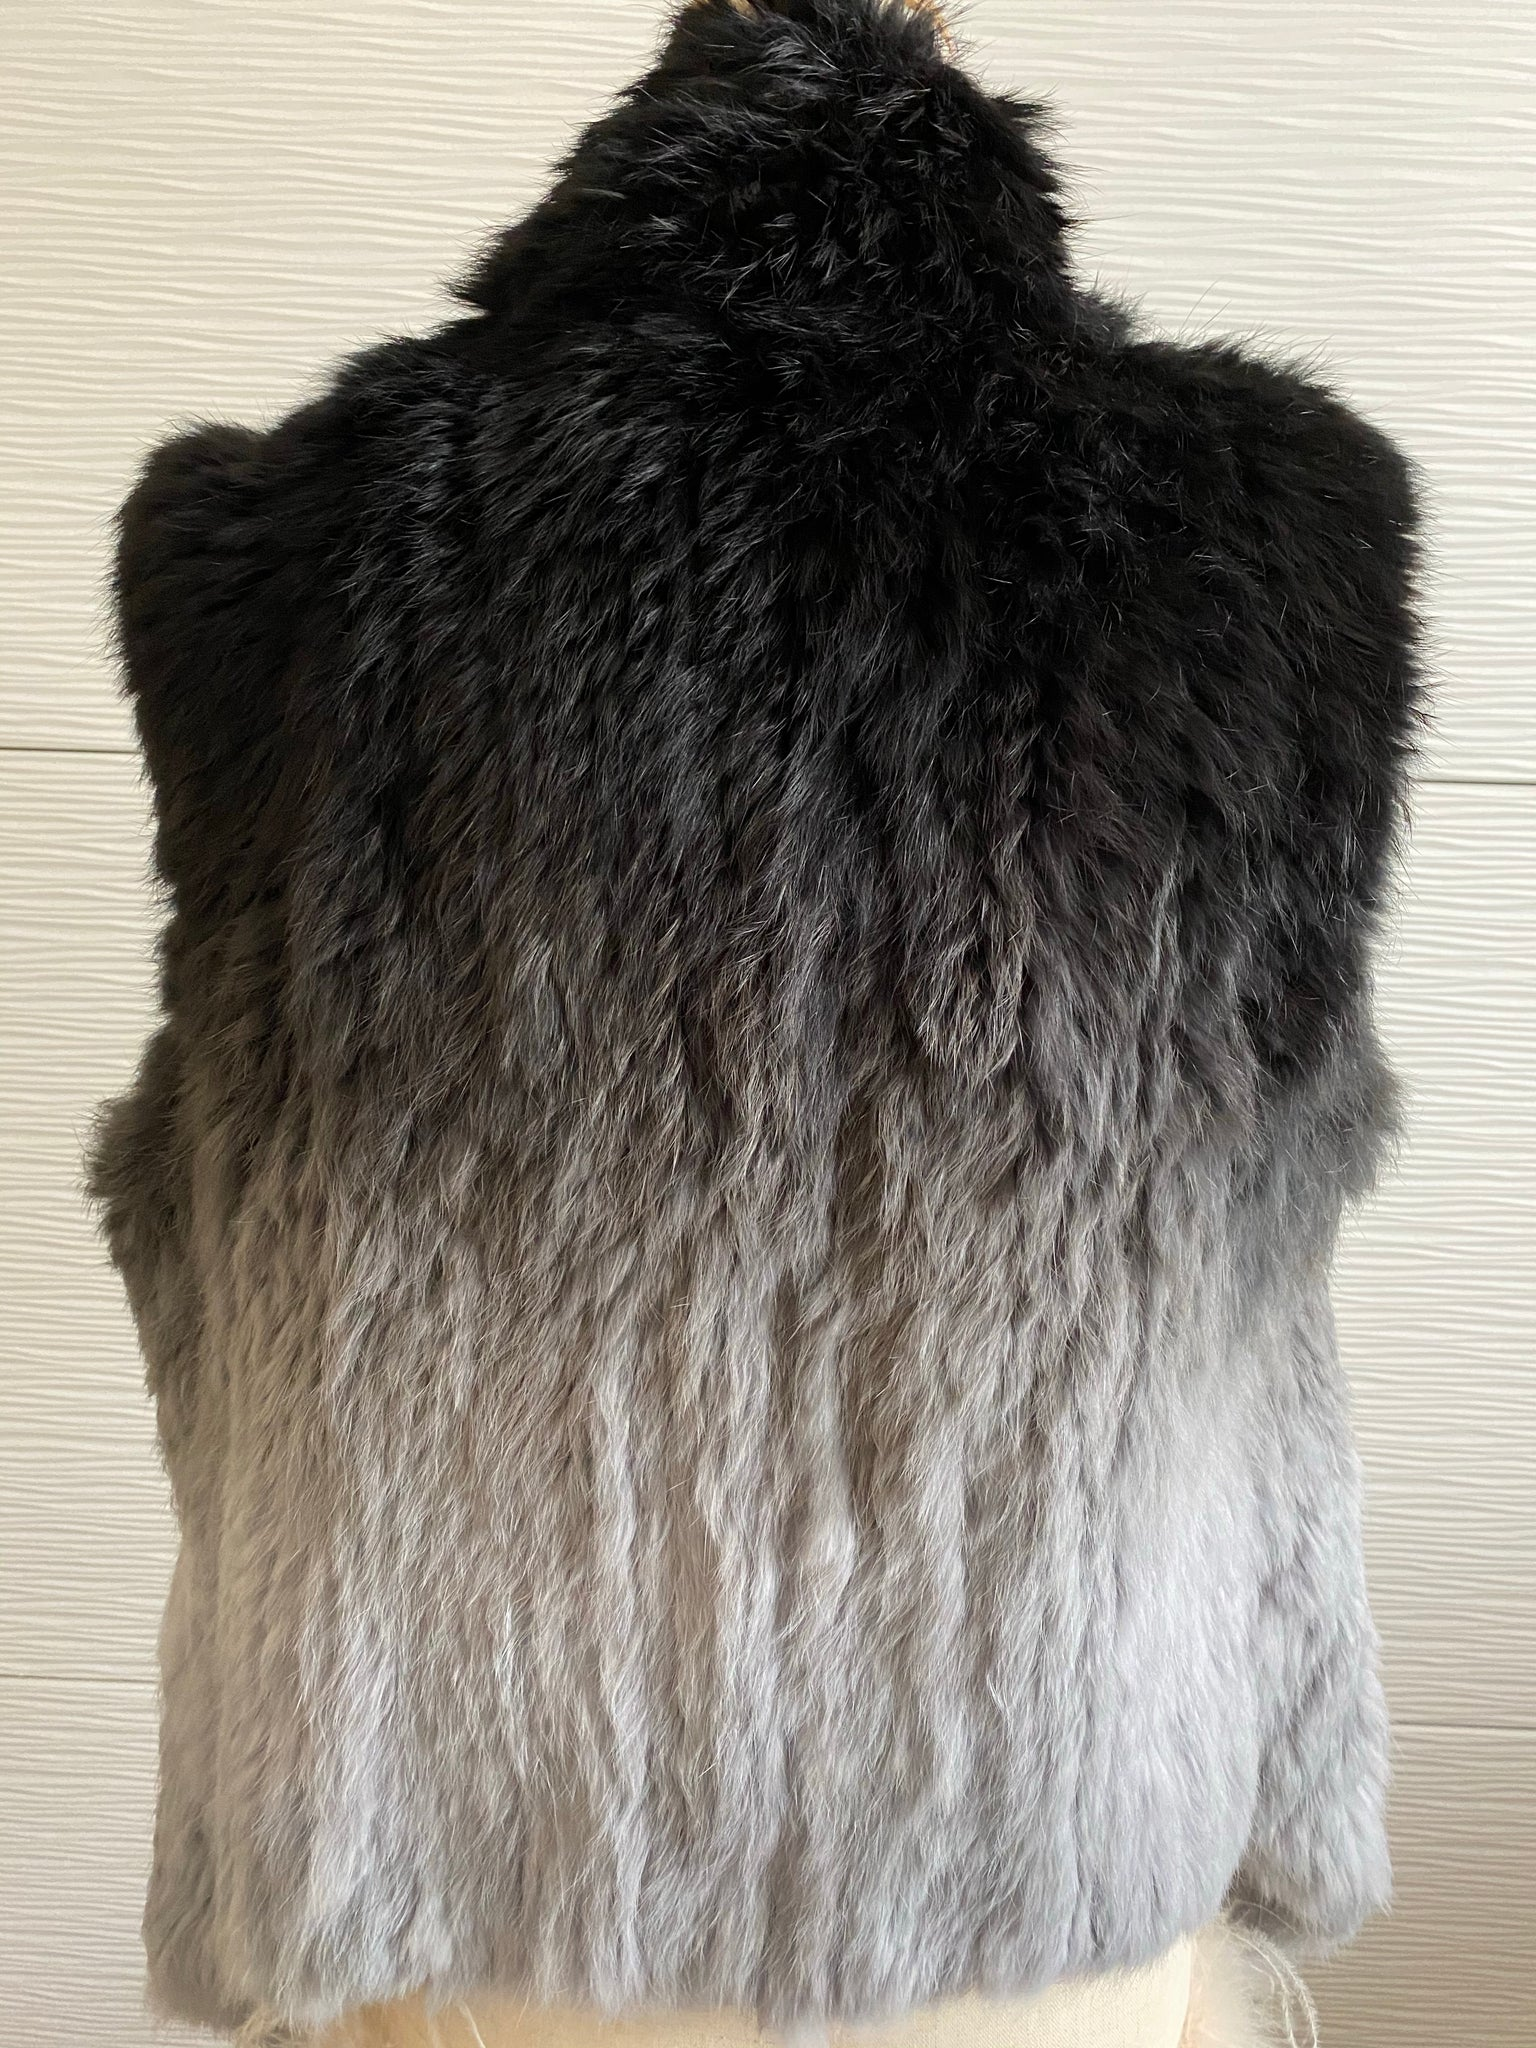 DANIER GRAY AND BLACK KNITTED RABBIT OMBRE FUR VEST - SIZE MEDIUM